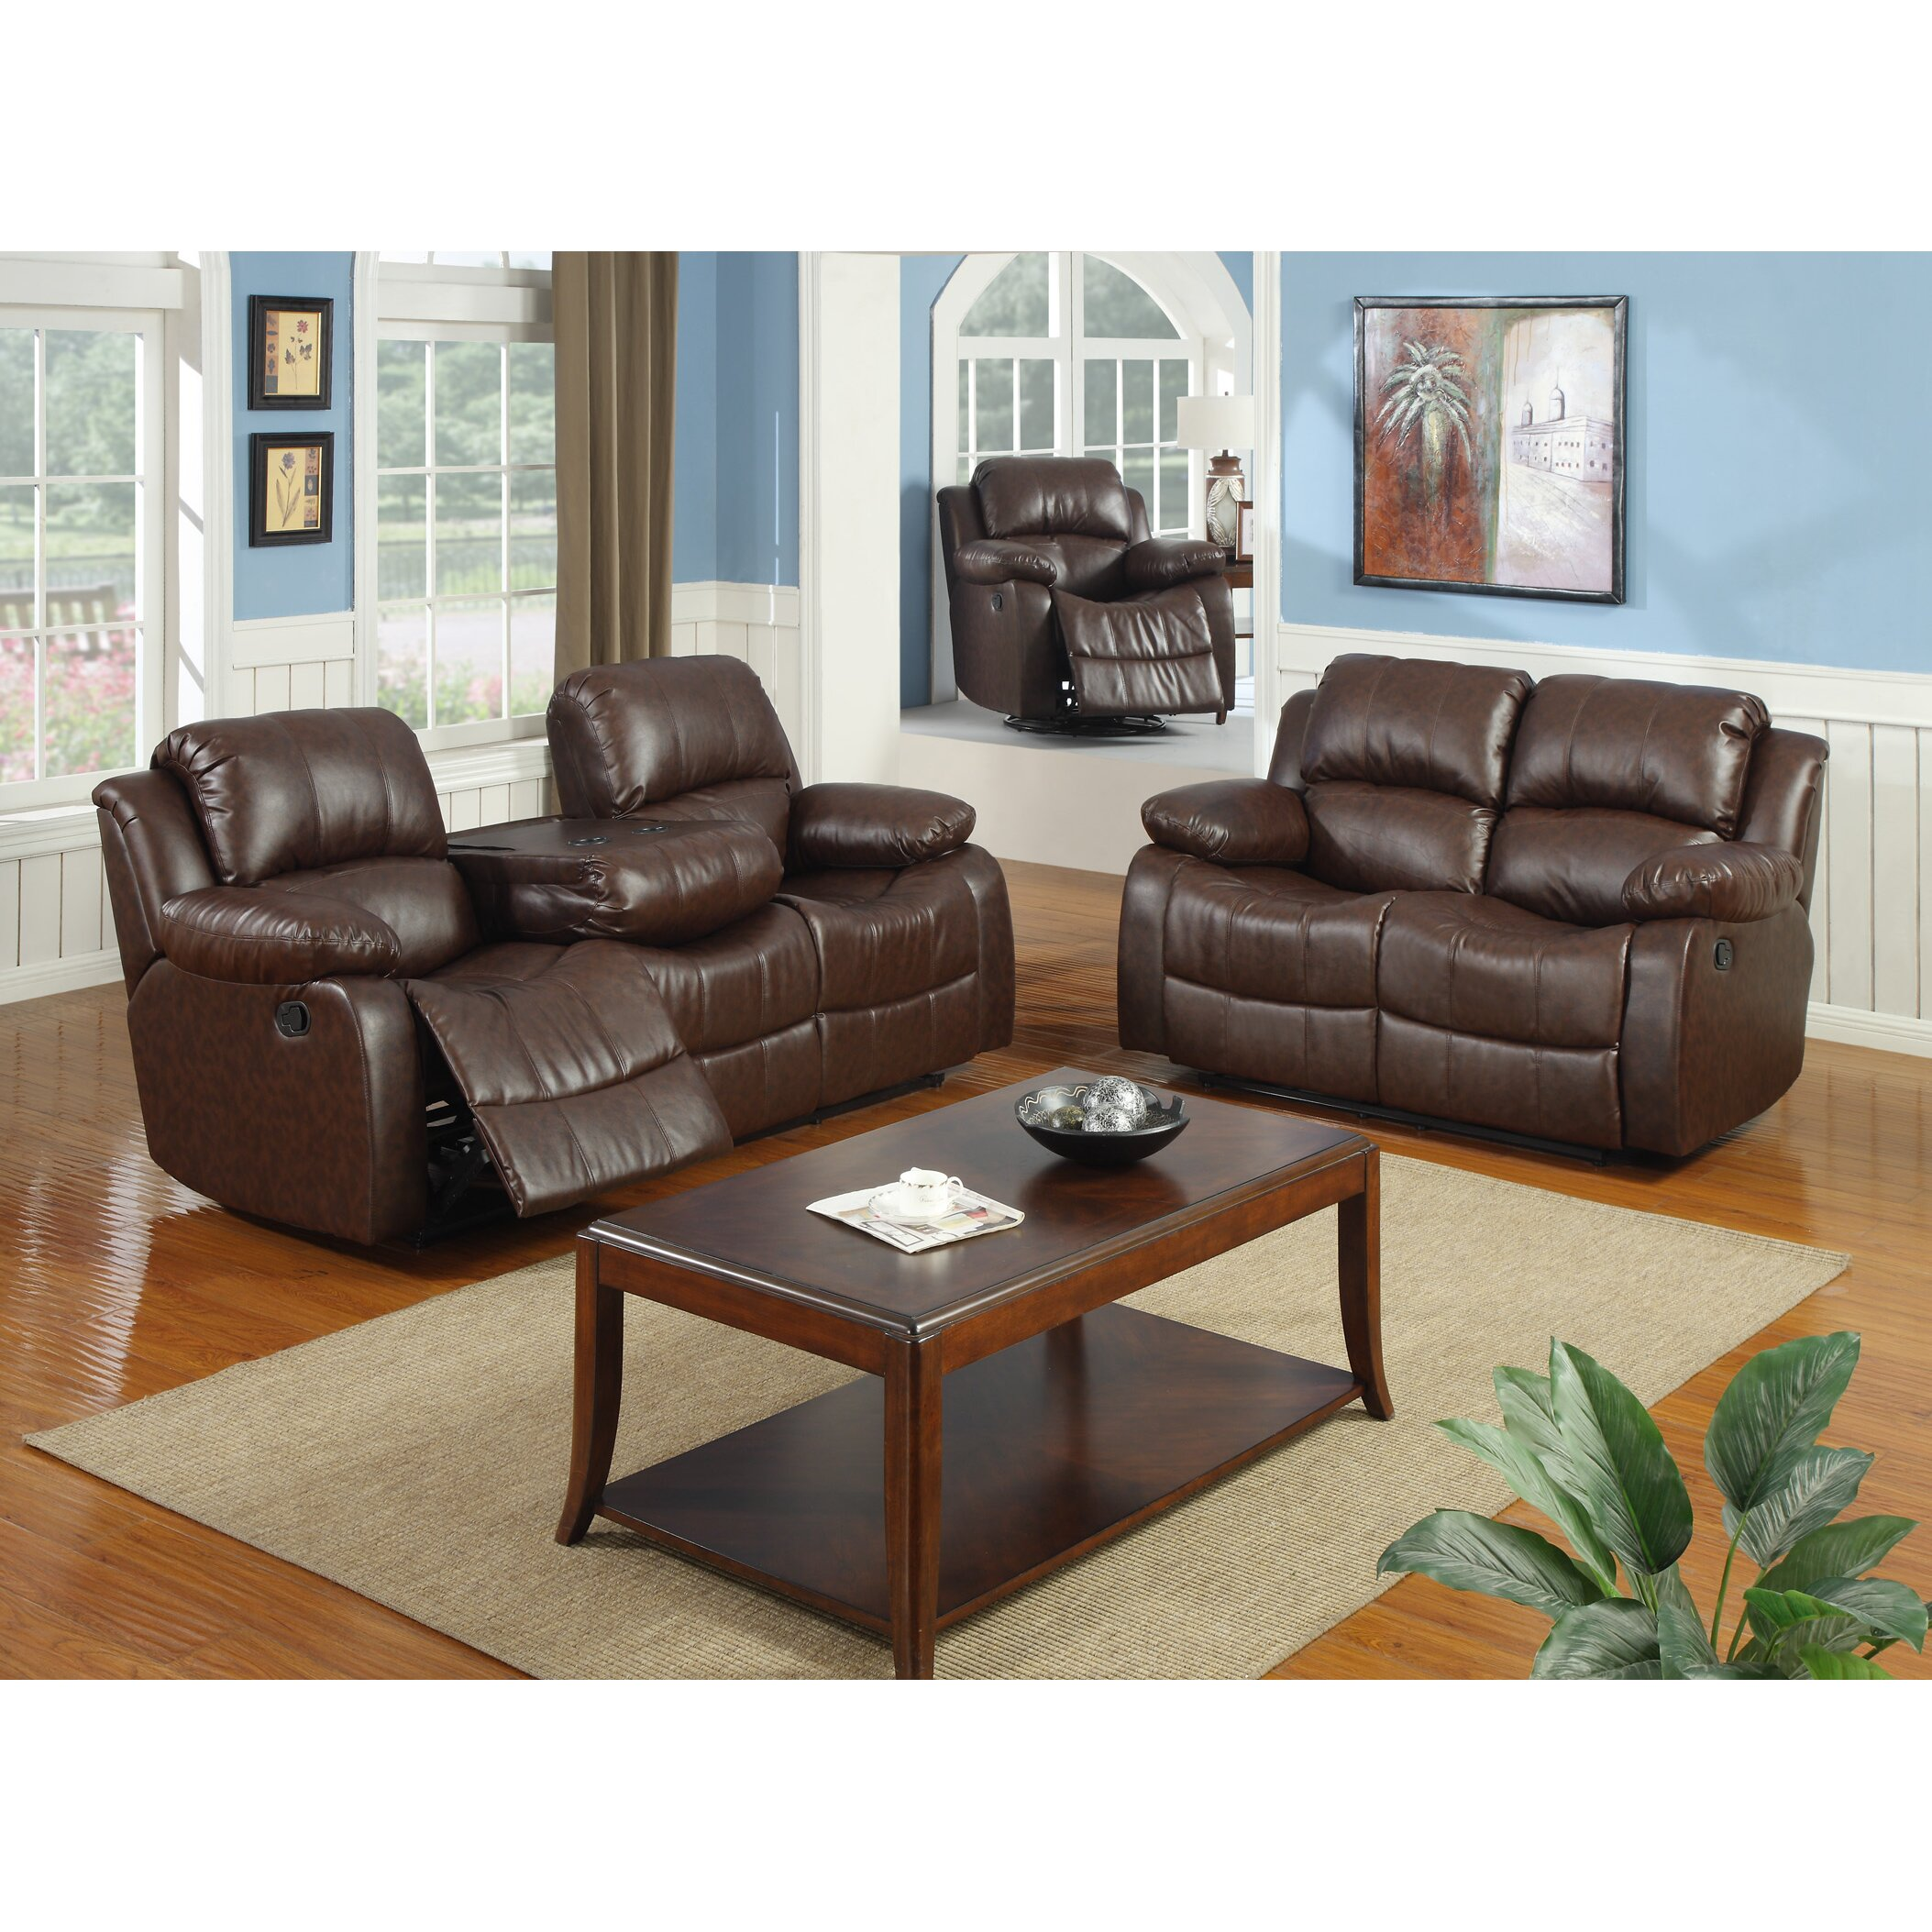 Best quality furniture bonded leather 3 piece recliner for Best living room furniture